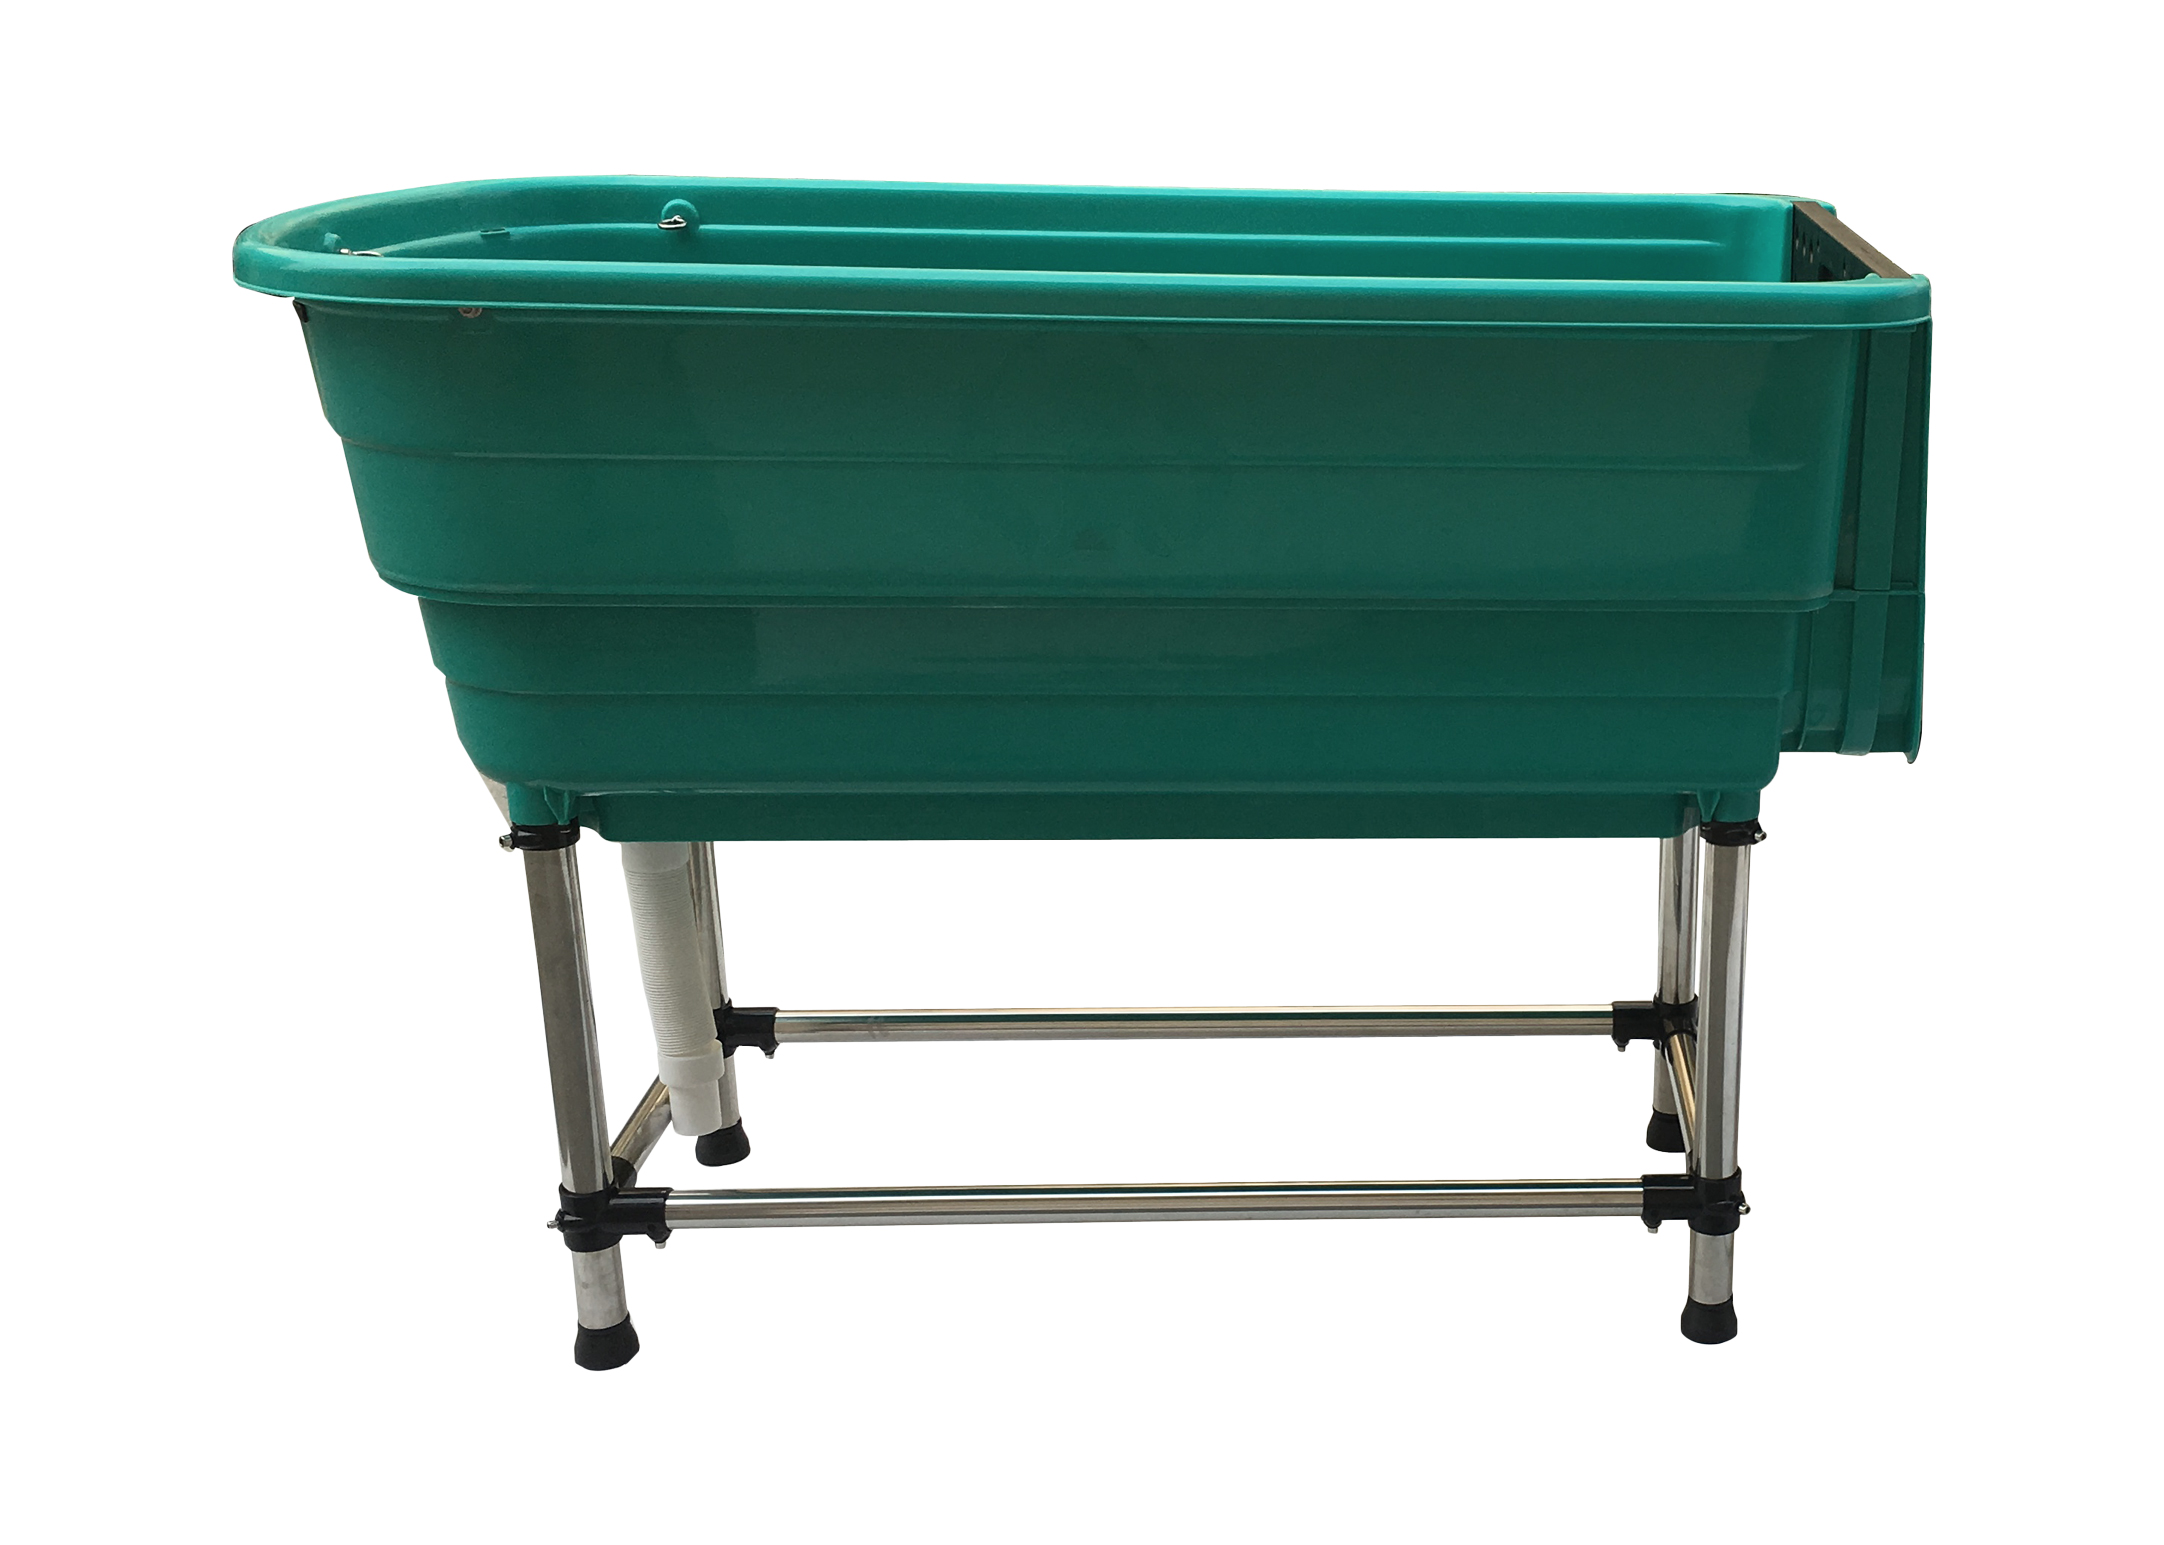 Show Tech Handy Tub L 124x59x90cm + Ramp Bath